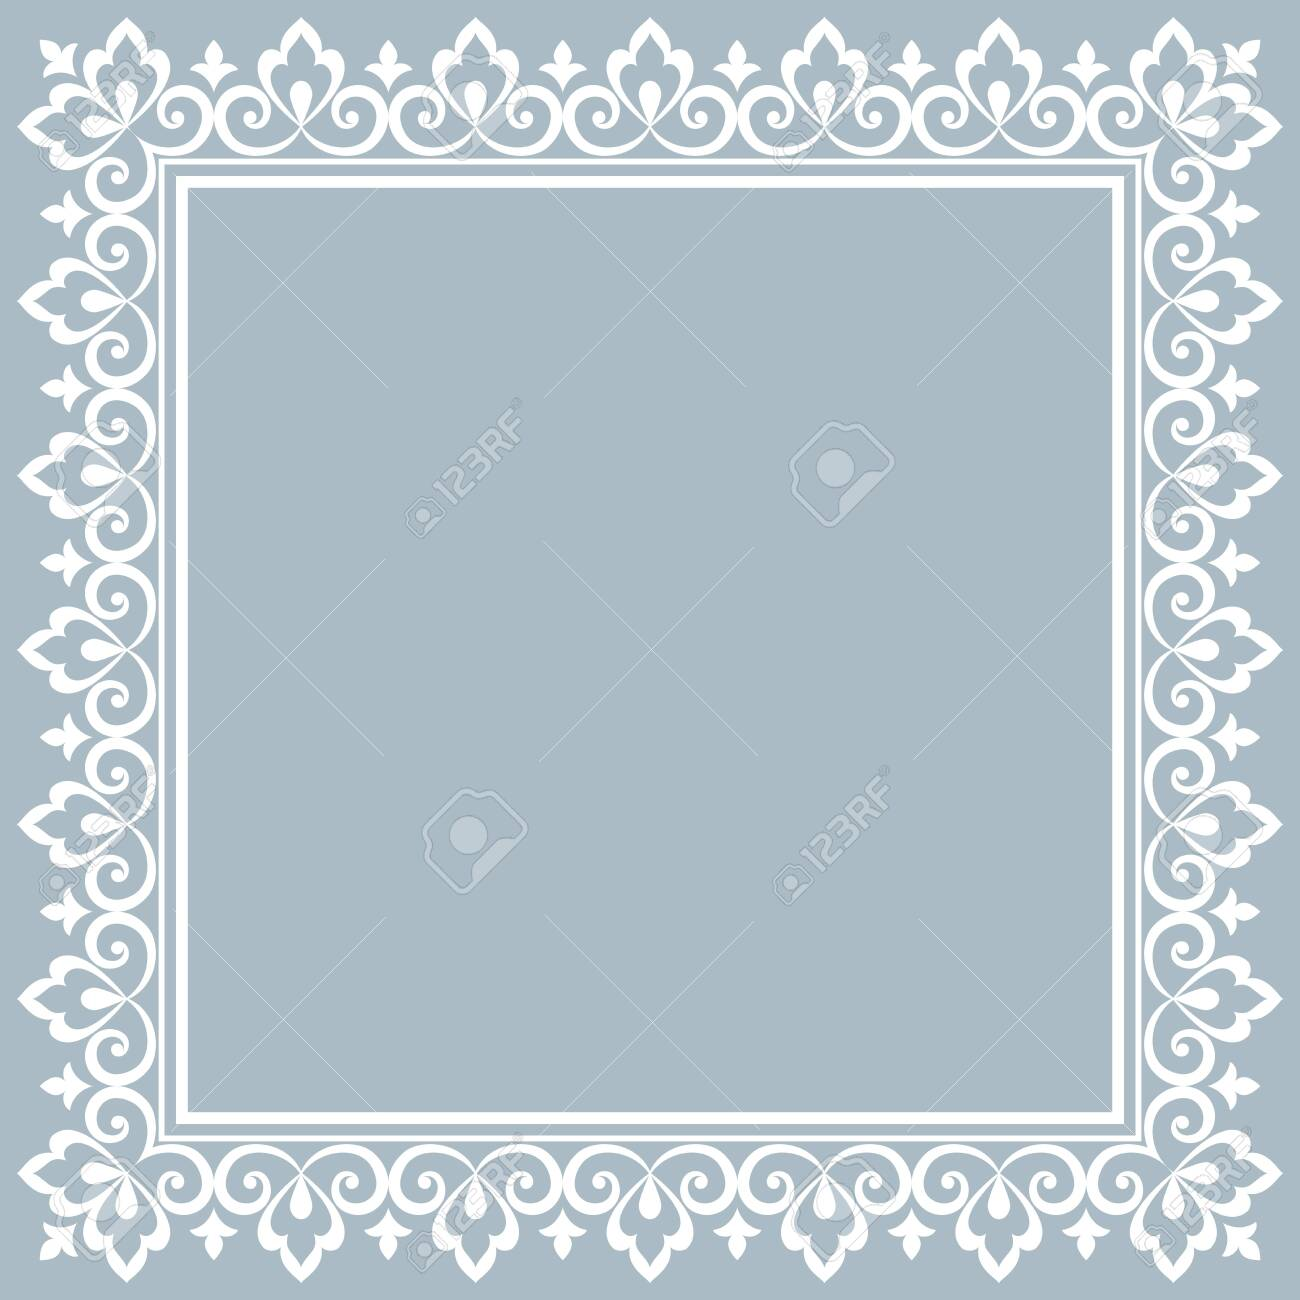 Decorative frame Elegant vector element for design in Eastern style, place for text. Floral blue border. Lace illustration for invitations and greeting cards - 133795740